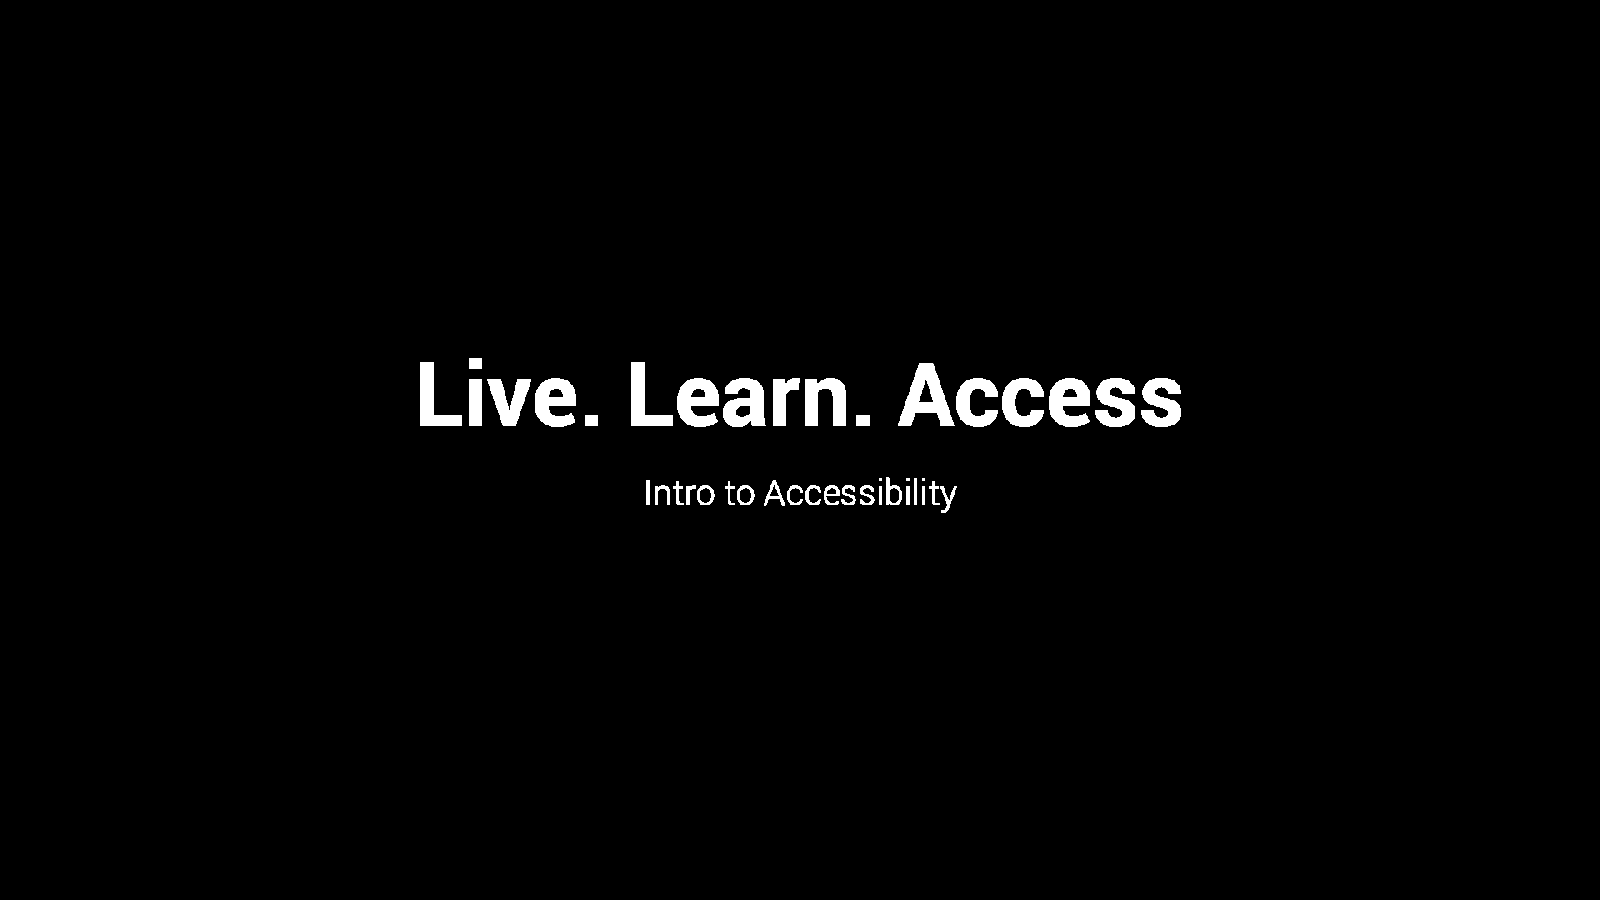 Live. Learn. Access. Intro to Accessibility